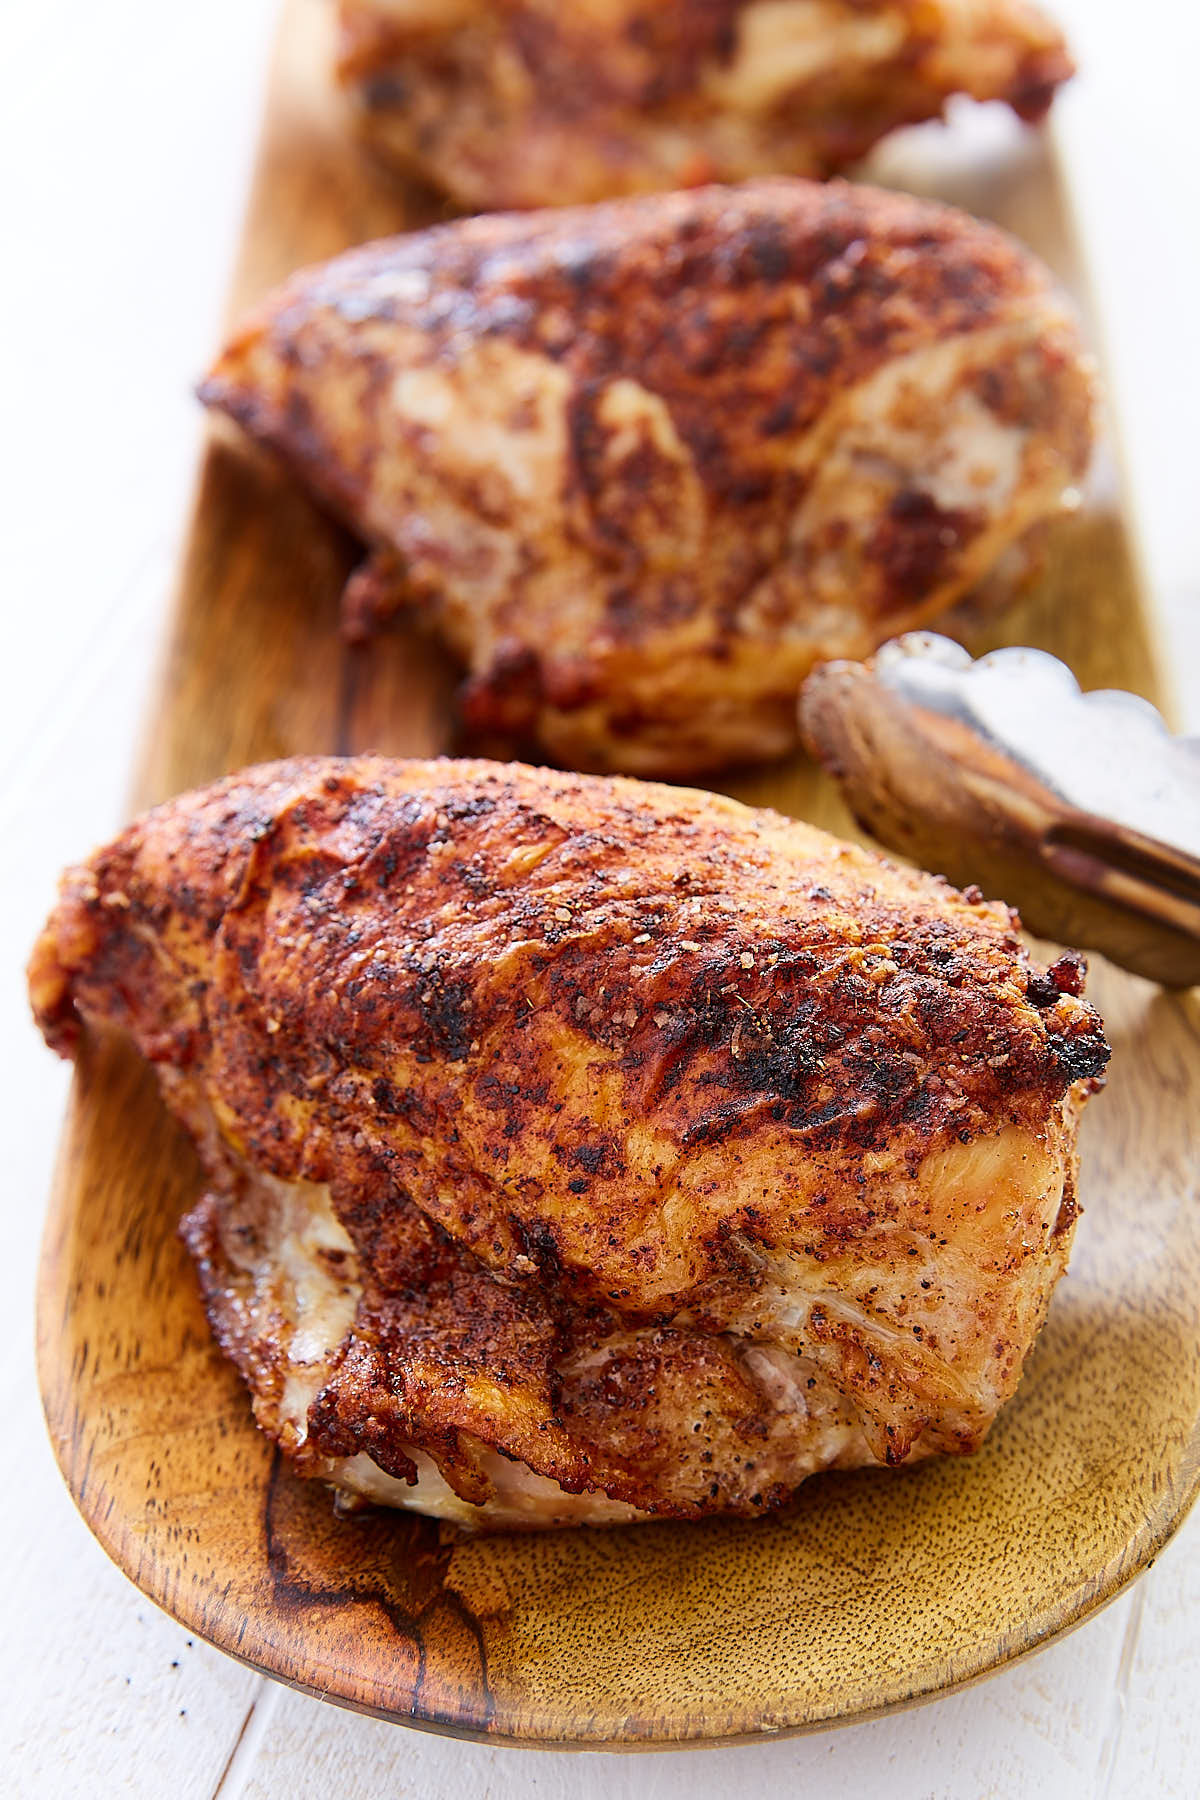 Oven Baked Chicken Breast Recipes  Crispy Oven Roasted Chicken Breast i FOOD Blogger